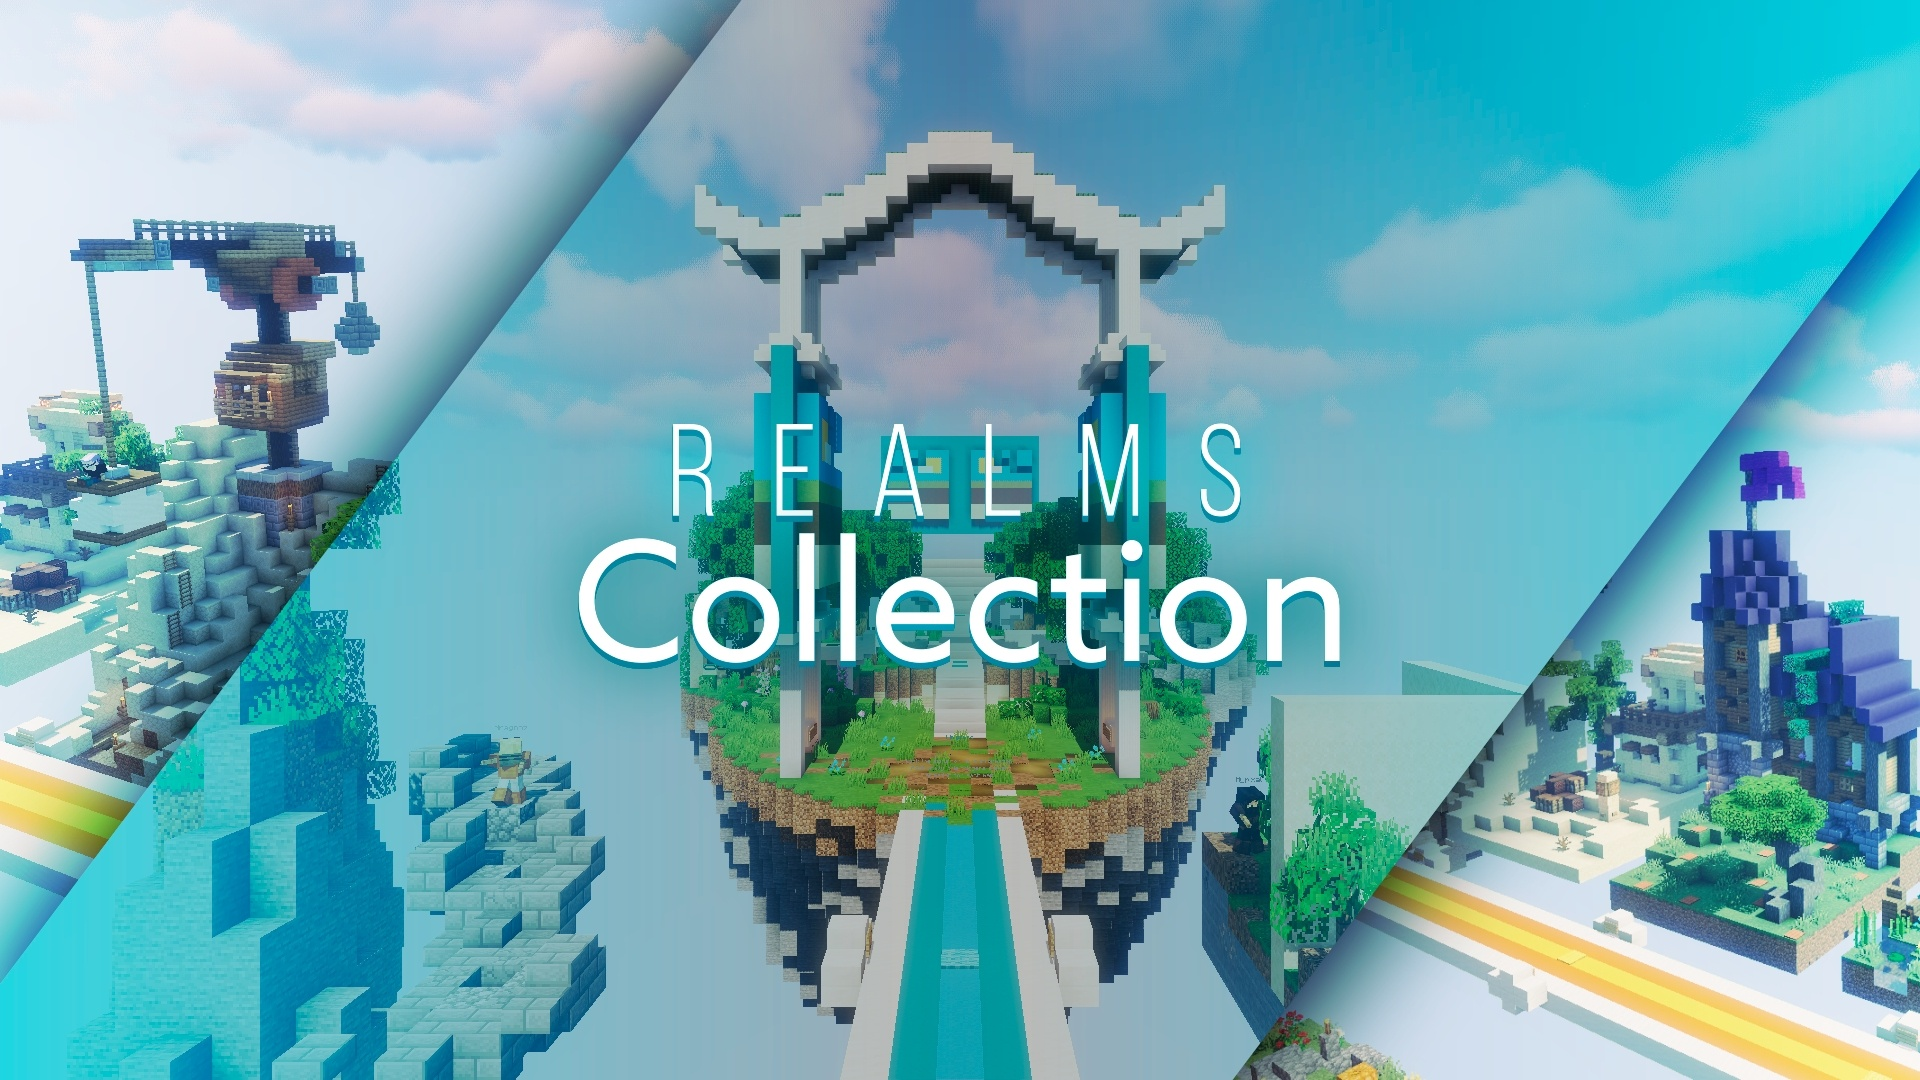 Realms Collection